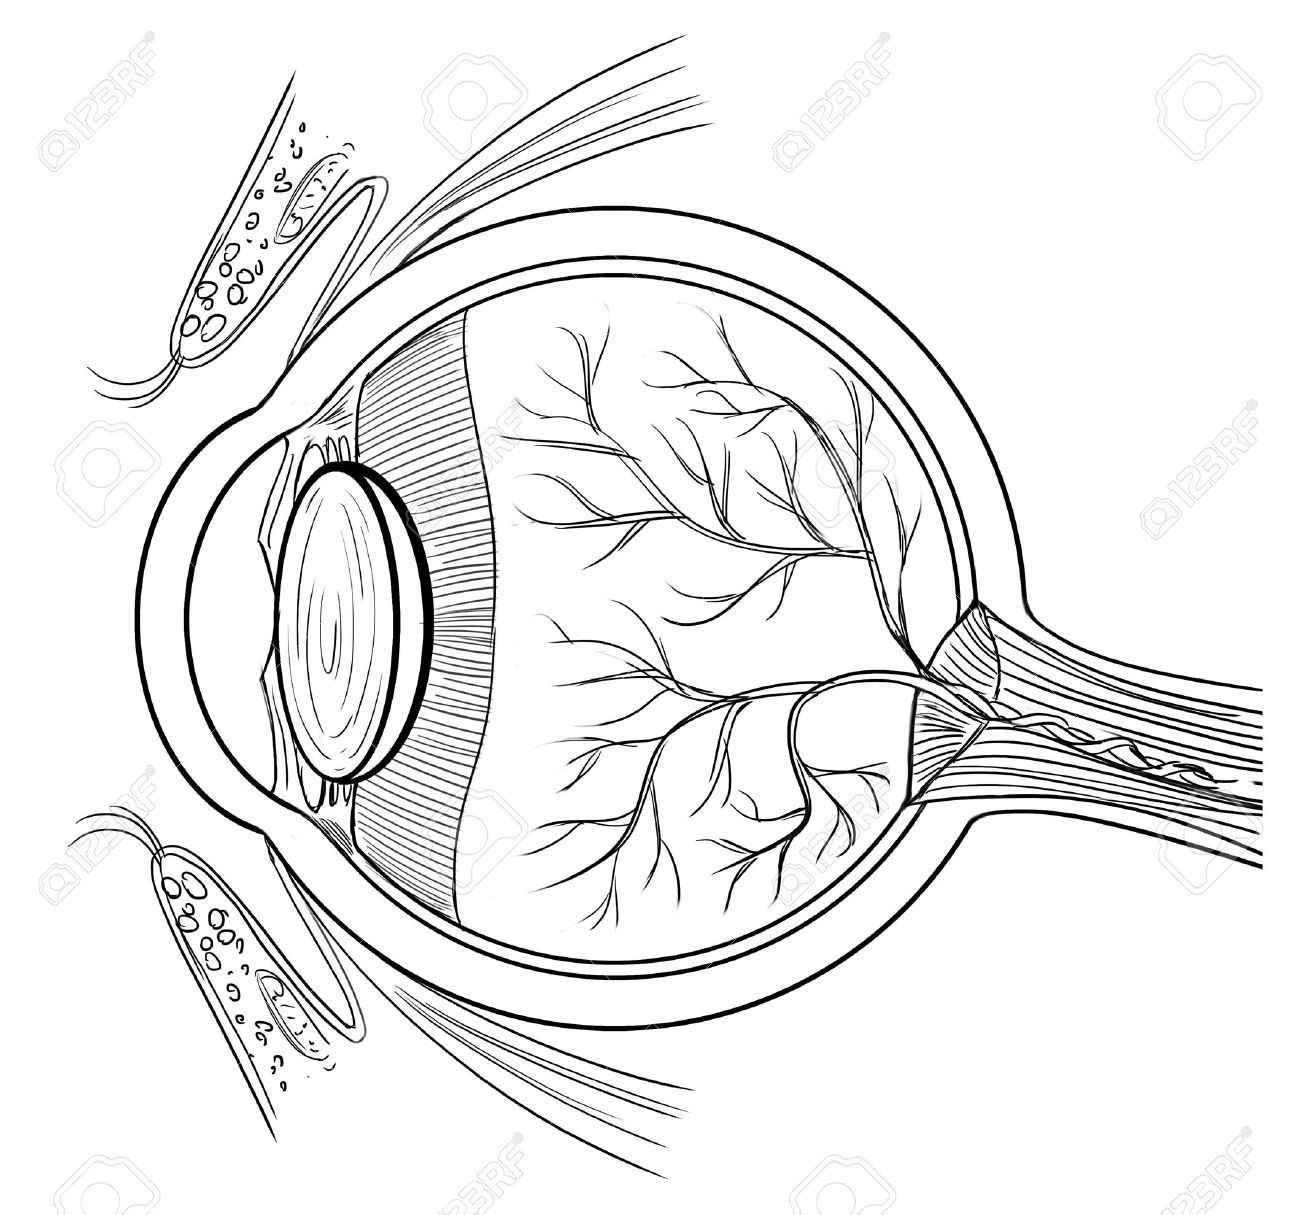 Outline illustration of the human eye anatomy Stock Vector - 16214862